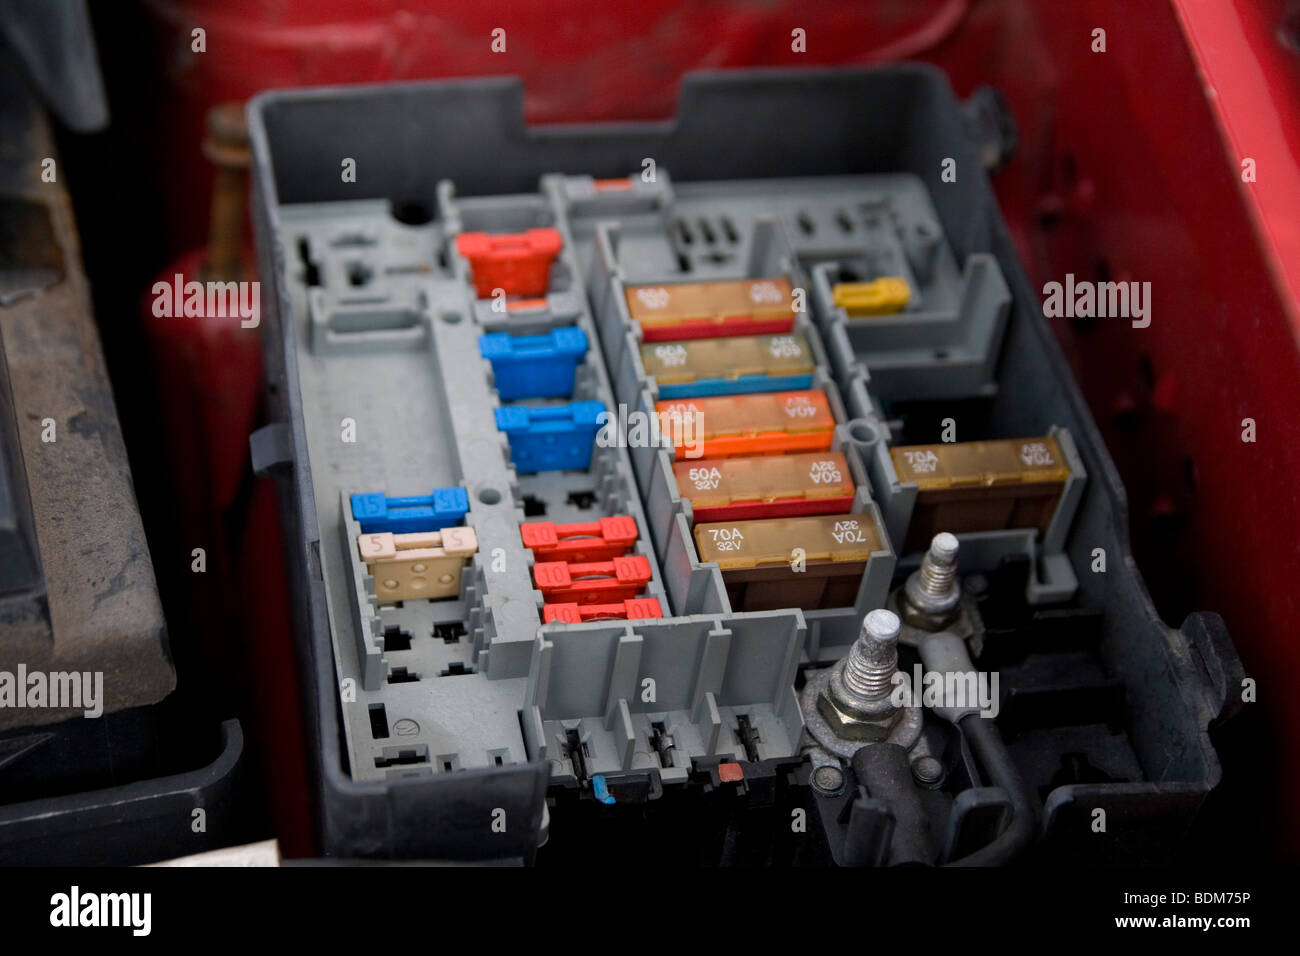 Citroen Wiring Diagrams Download Library Berlingo Fuse Box Stock Photo Royalty Free Image